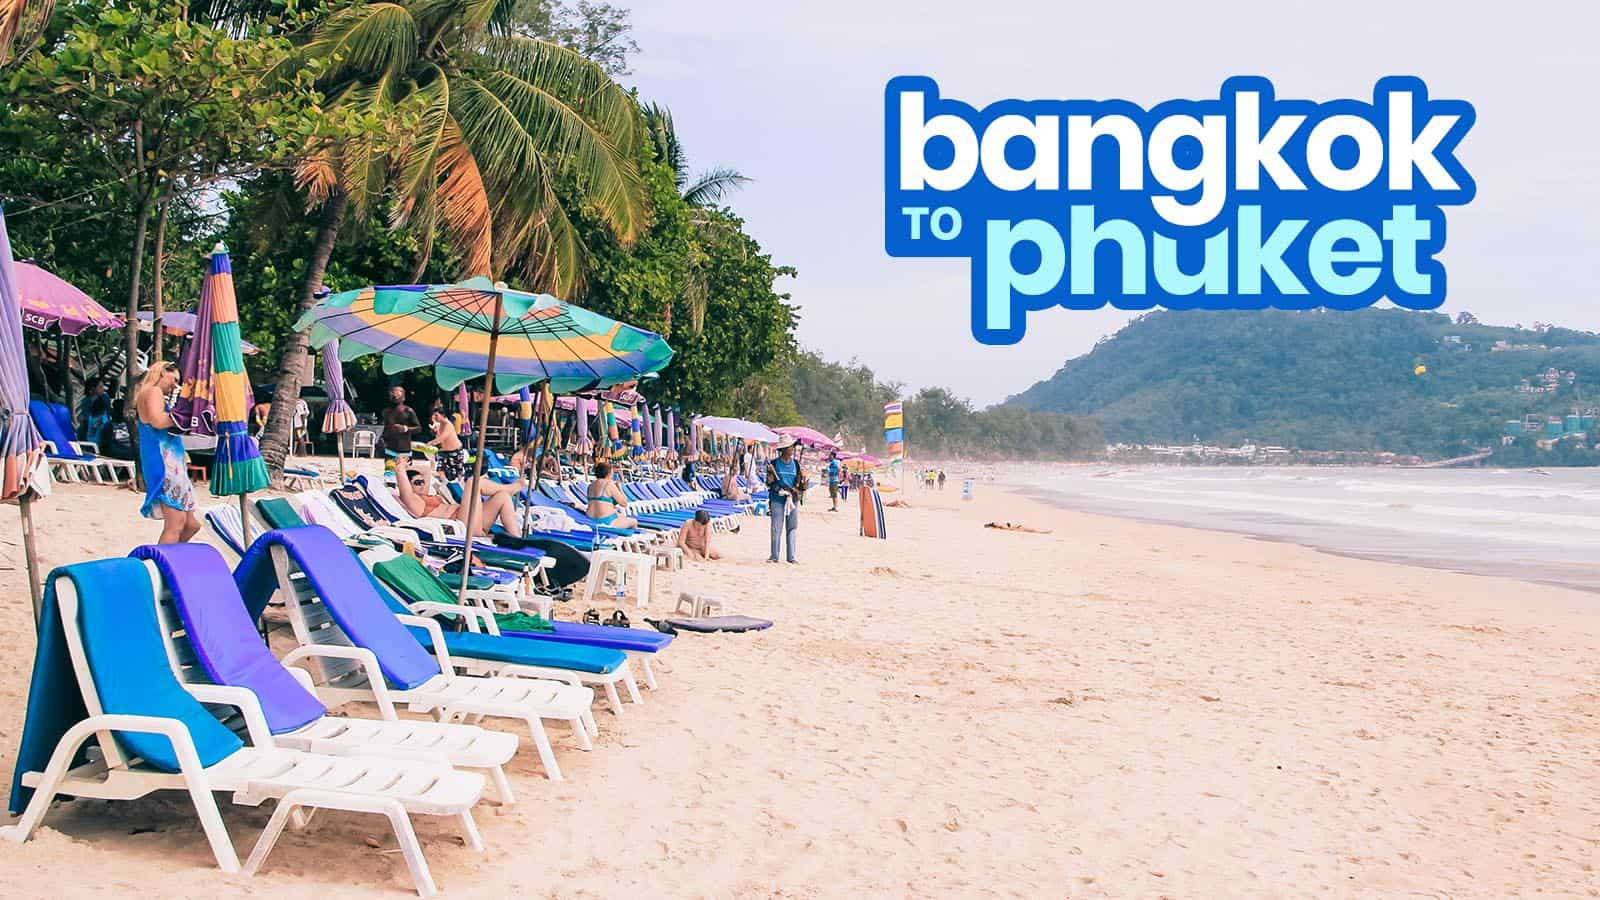 BANGKOK TO PHUKET: By Bus, Train & Plane